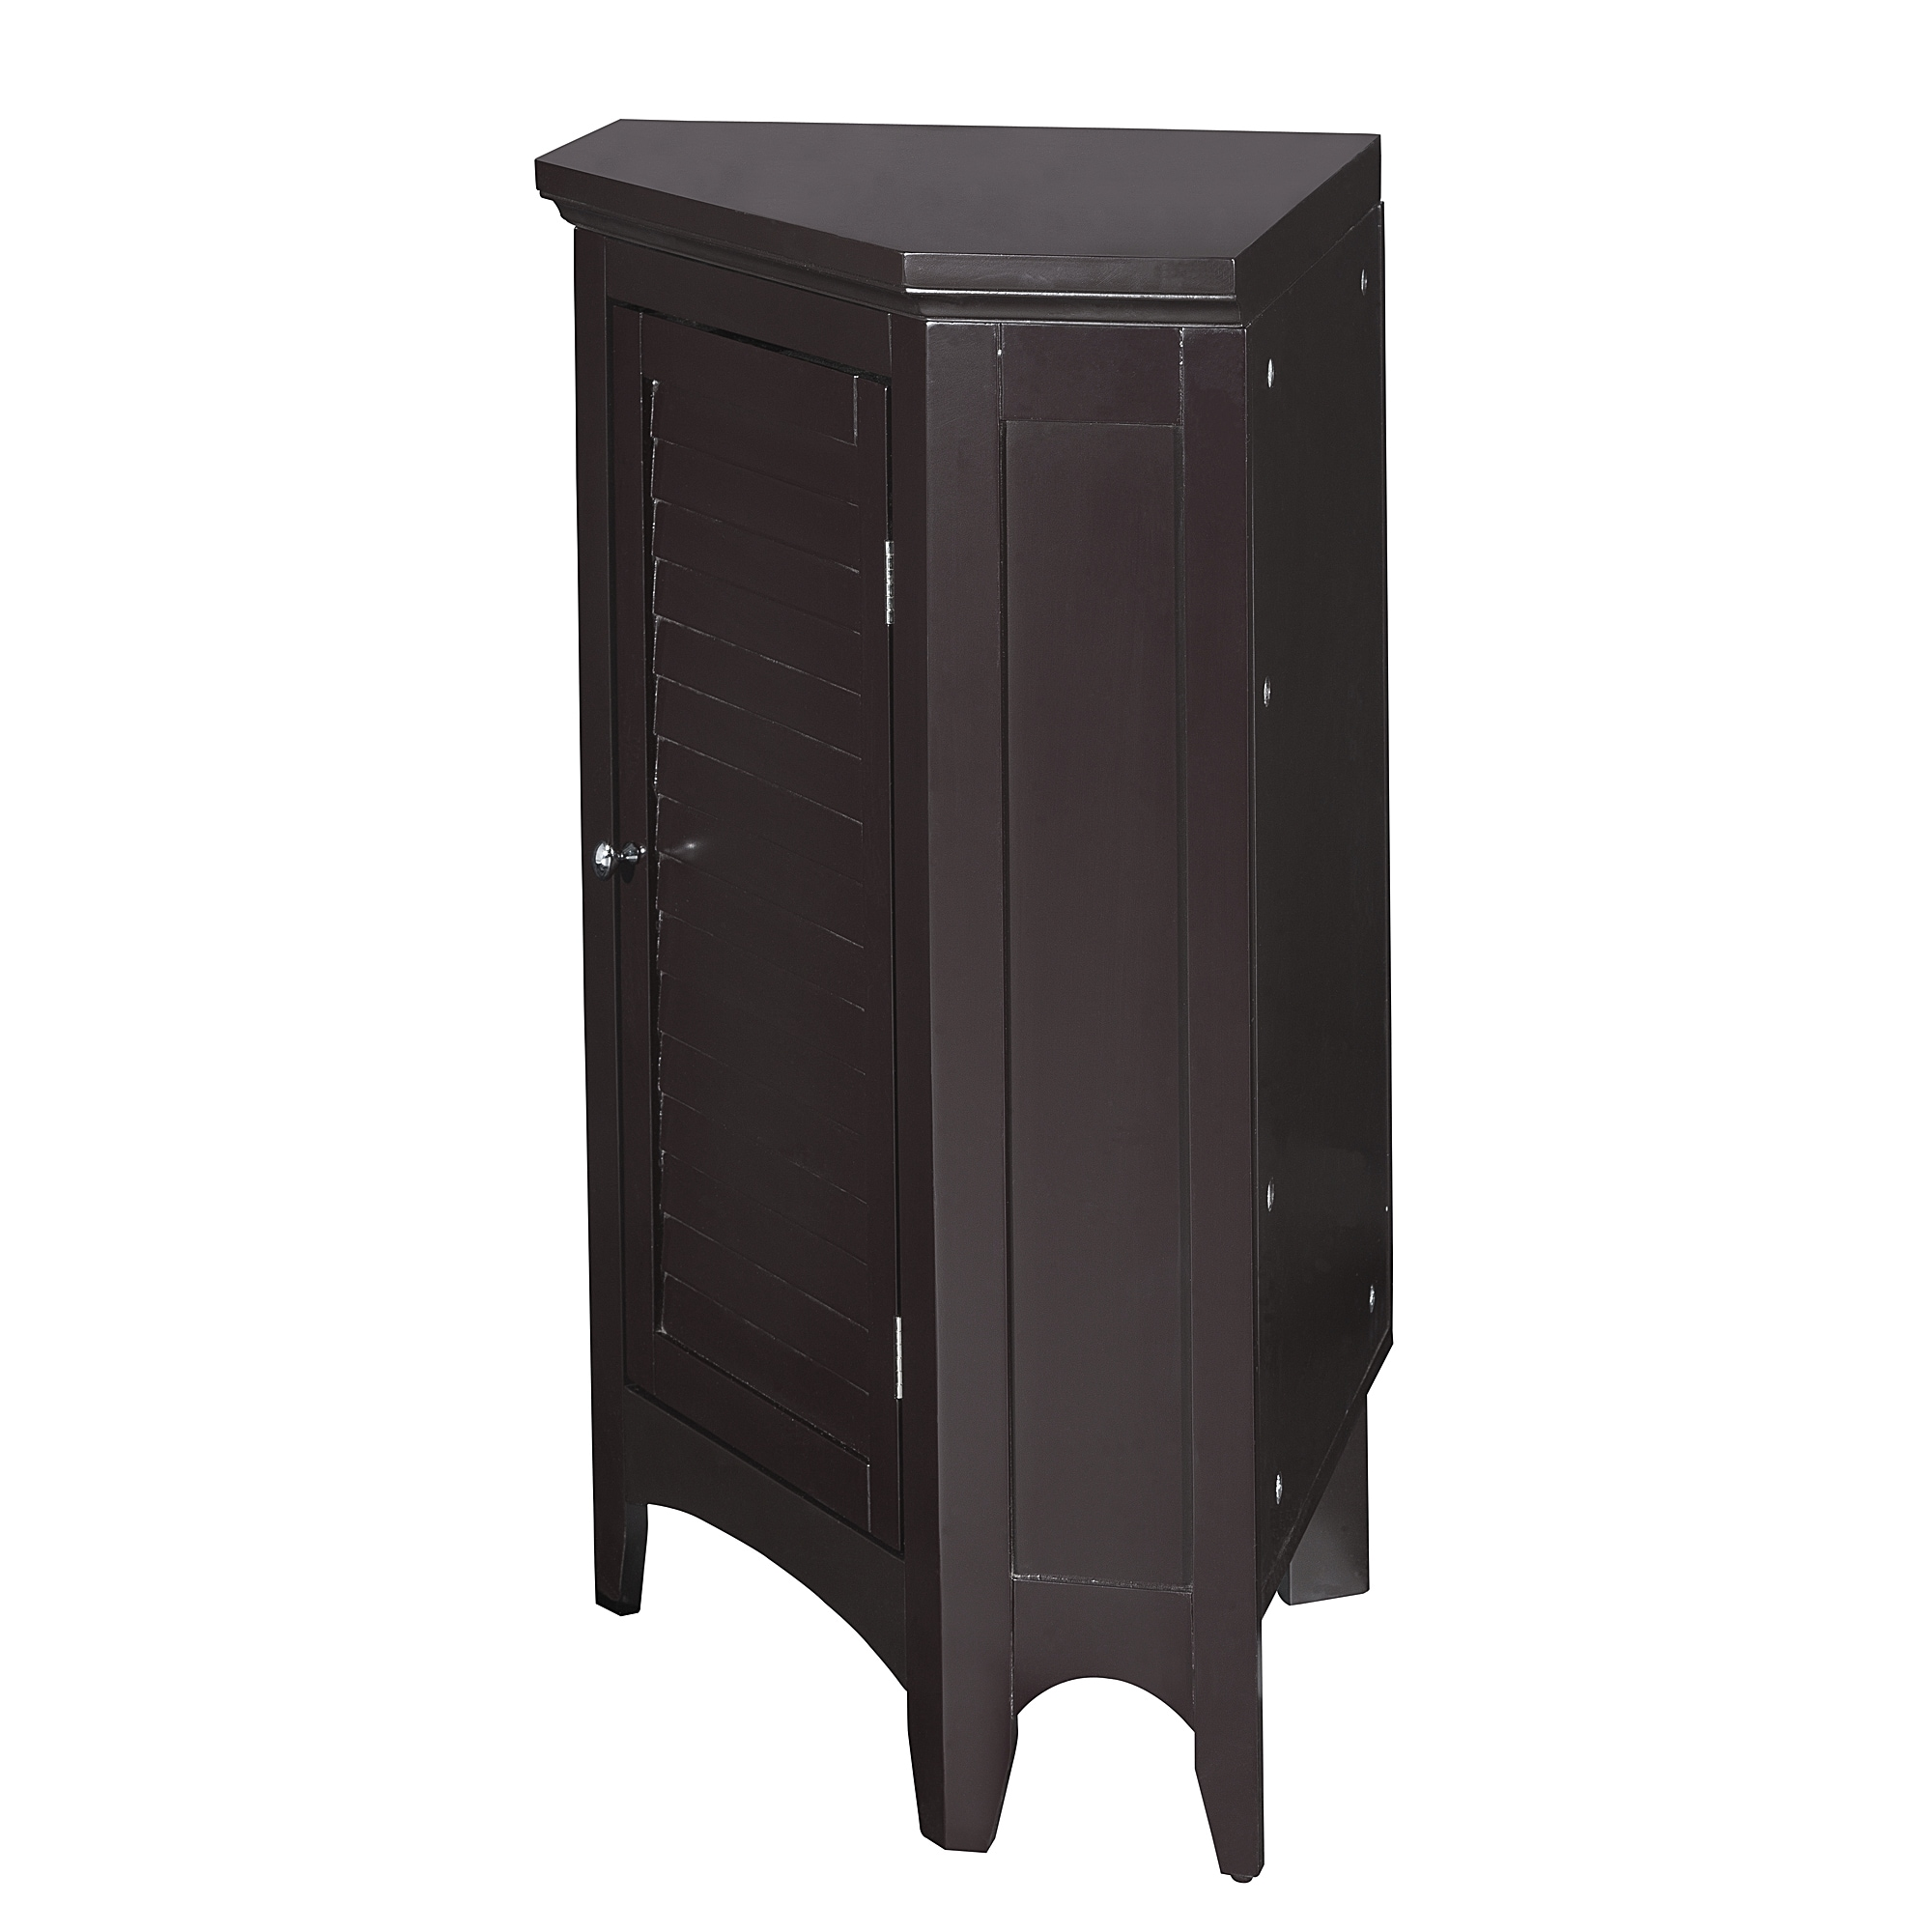 Bayfield Espresso Shutter Door Corner Floor Cabinet By Elegant Home Fashions Free Shipping Today 8162302